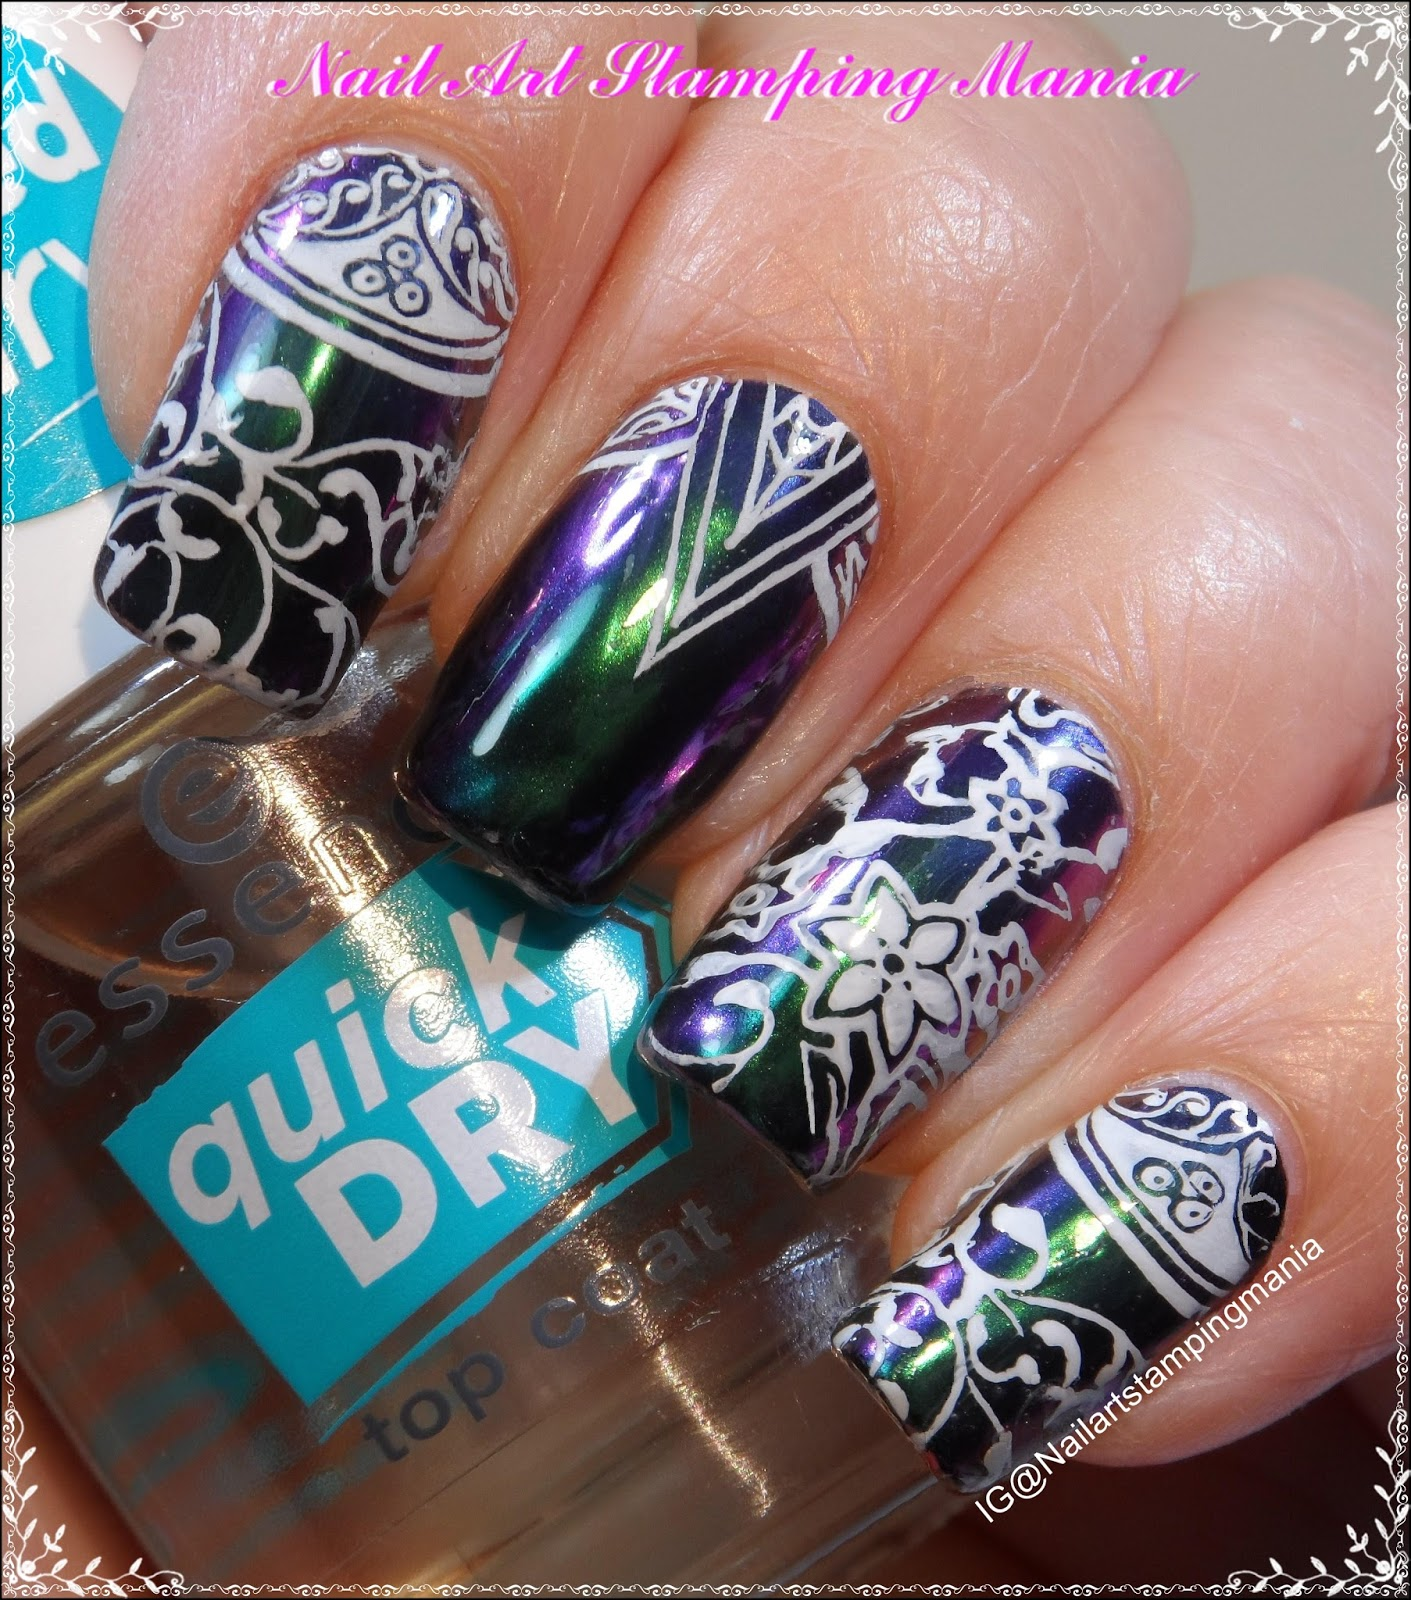 Nail Art Stamping Mania: Multichrome Manicure With Cici